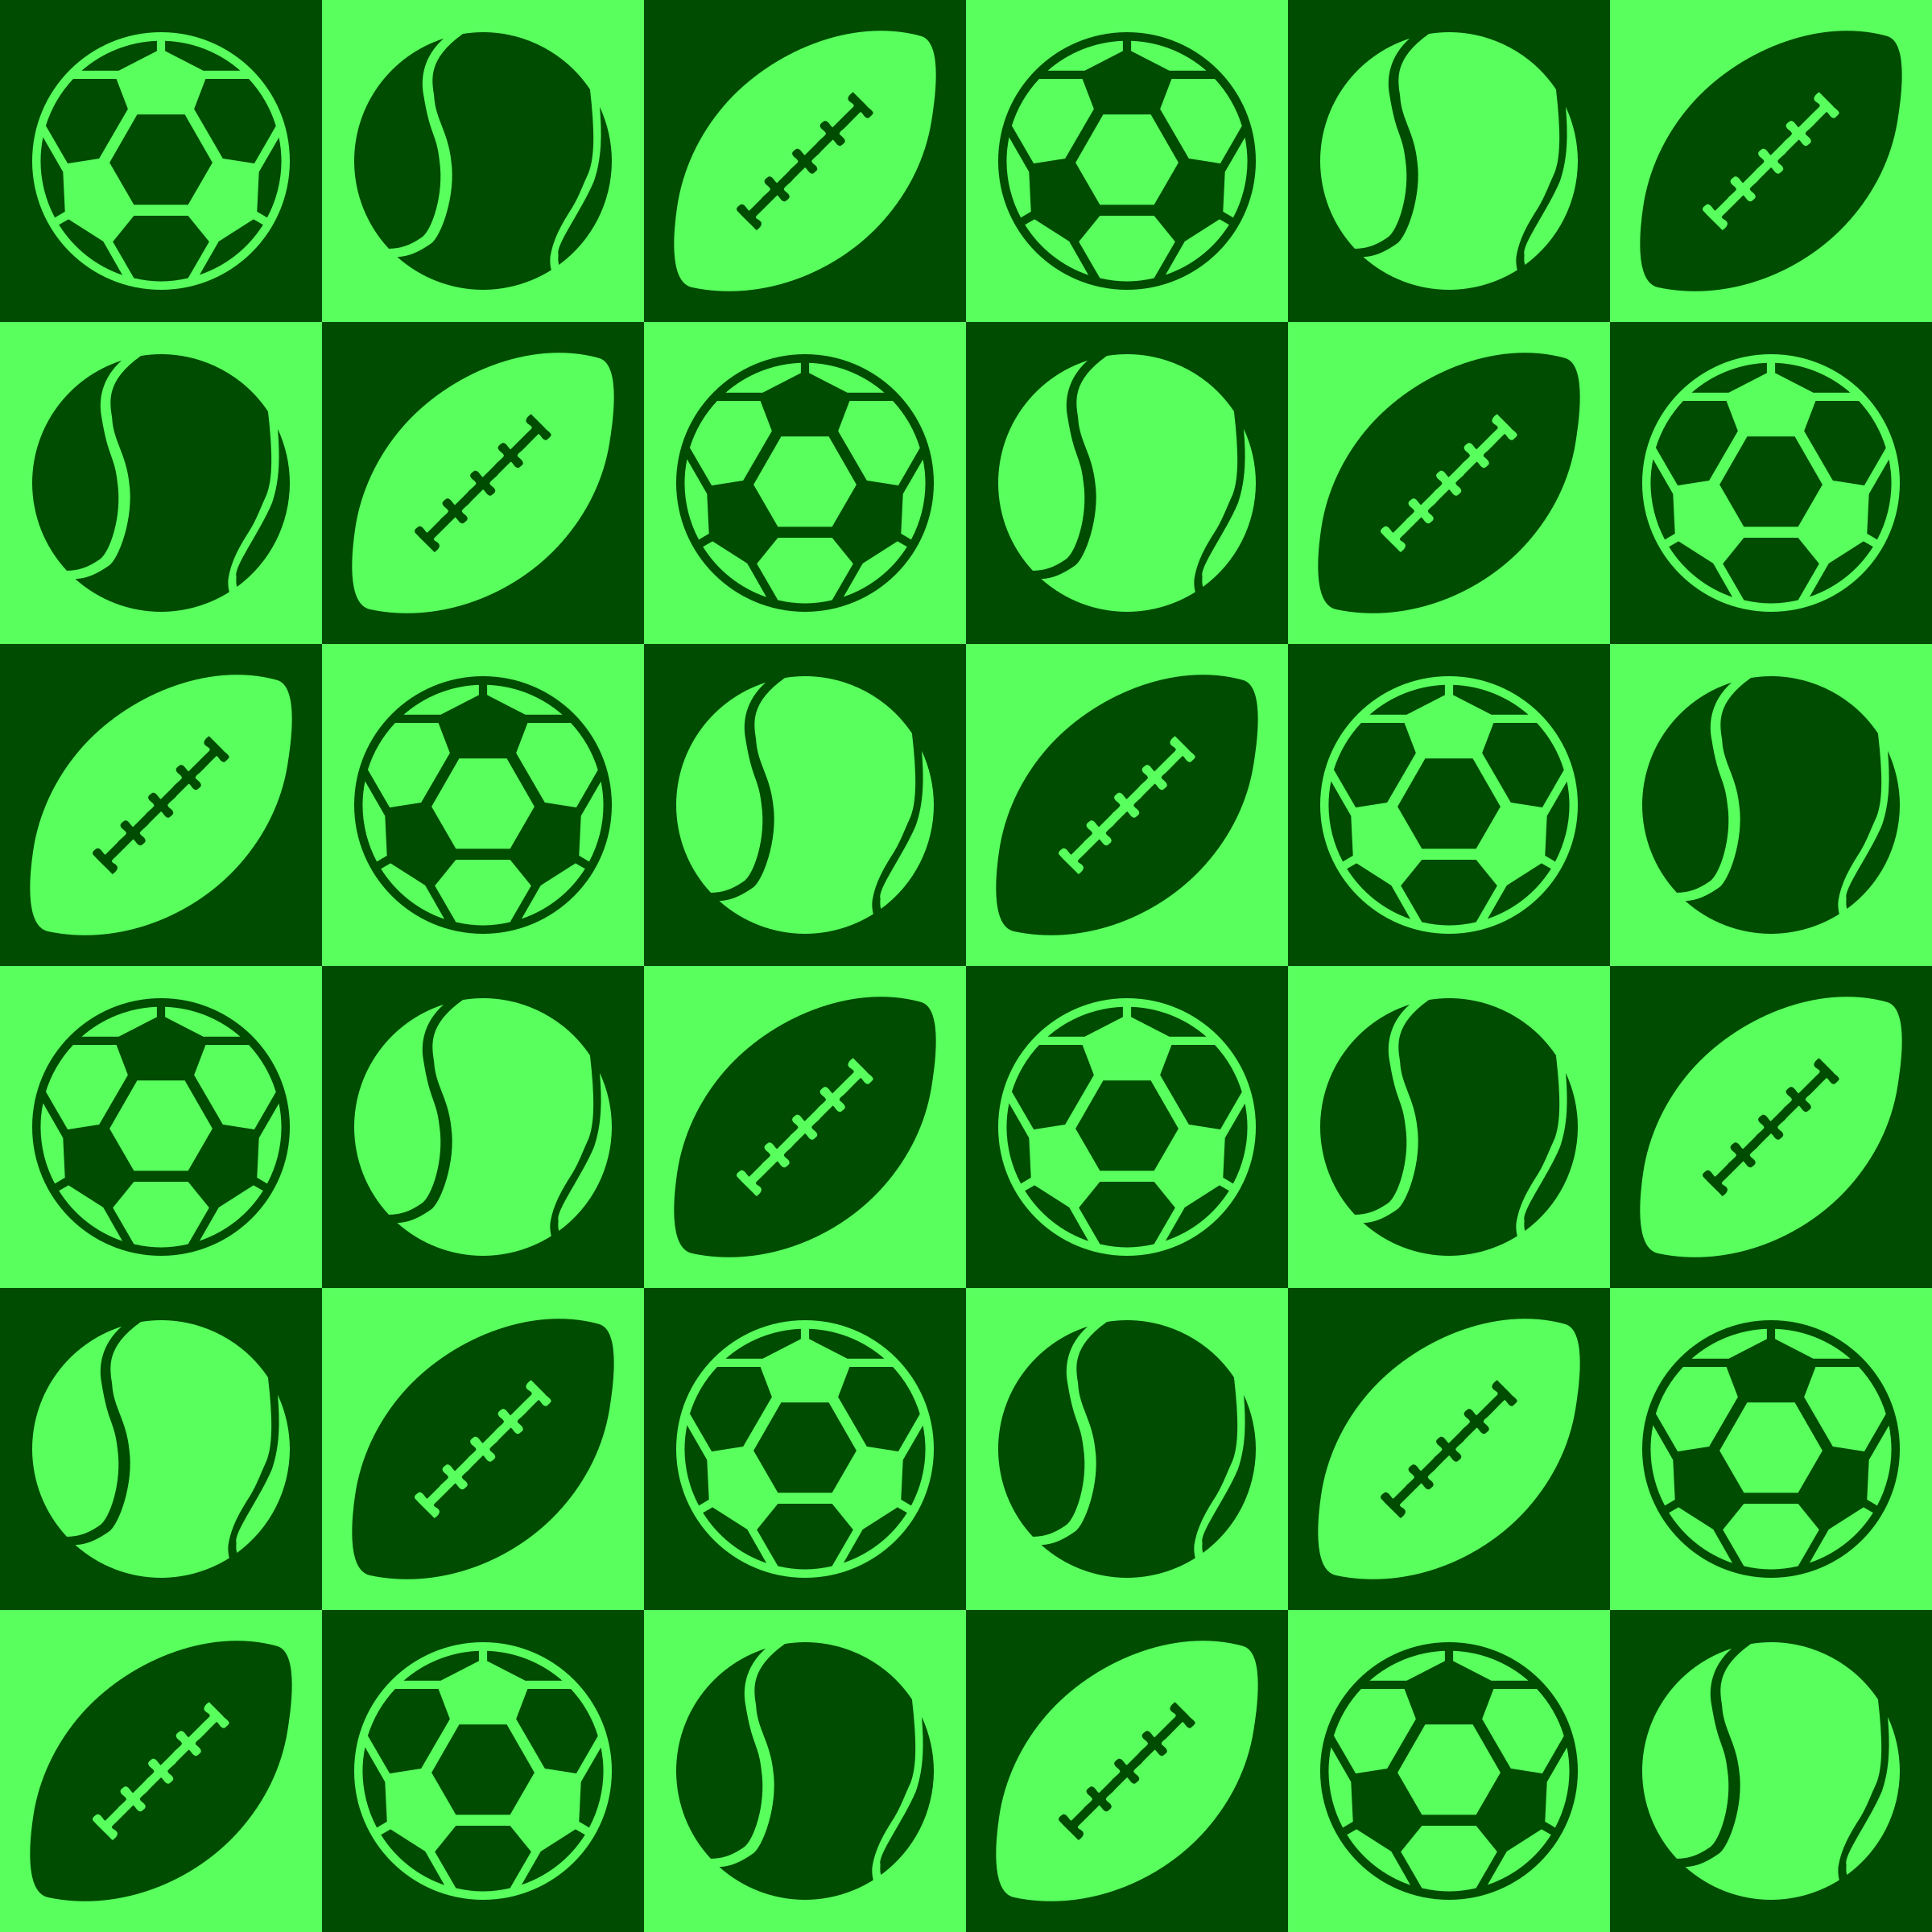 Sports ball pattern by Firkin